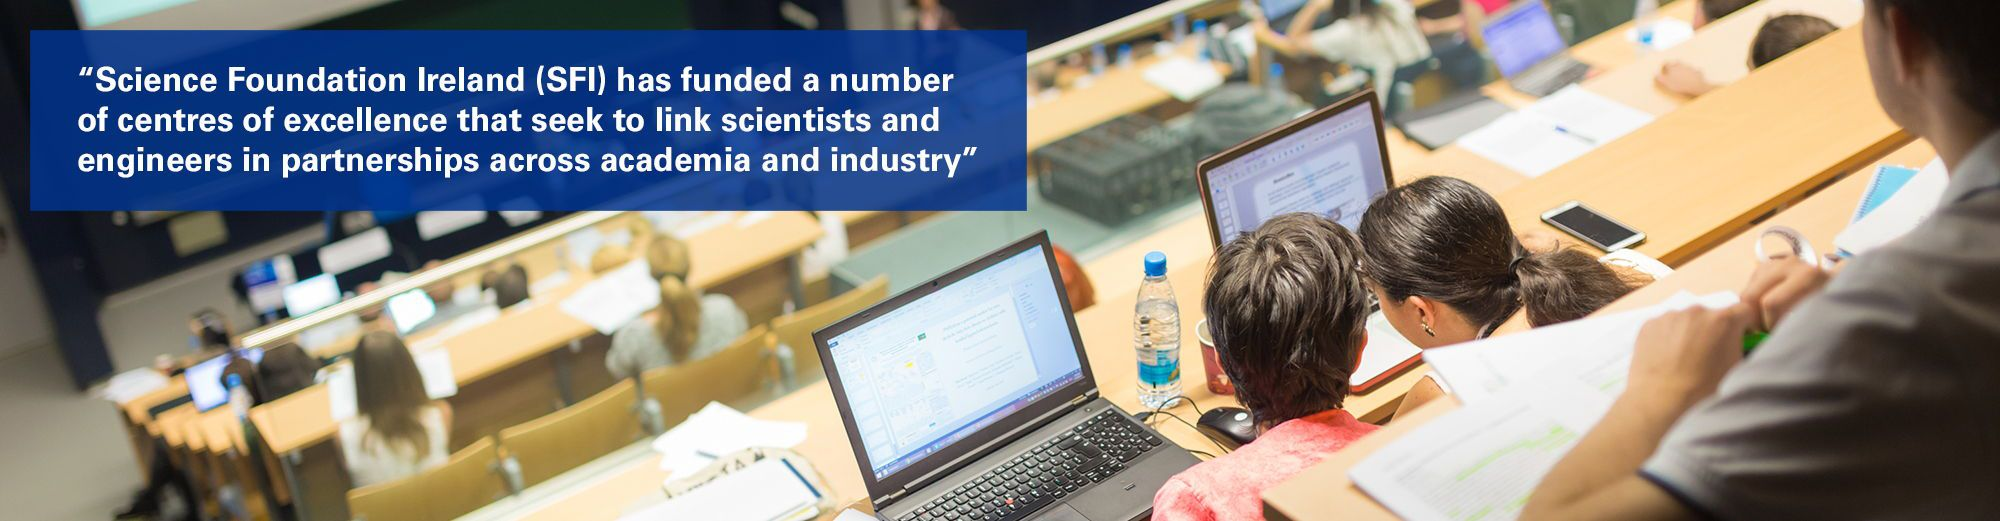 """Two people in lecture hall with text overlaid """"Science Foundation Ireland (SFI) has funded a number of centres of excellence that seek to link scientists and engineers in partnerships across academia and industry"""""""